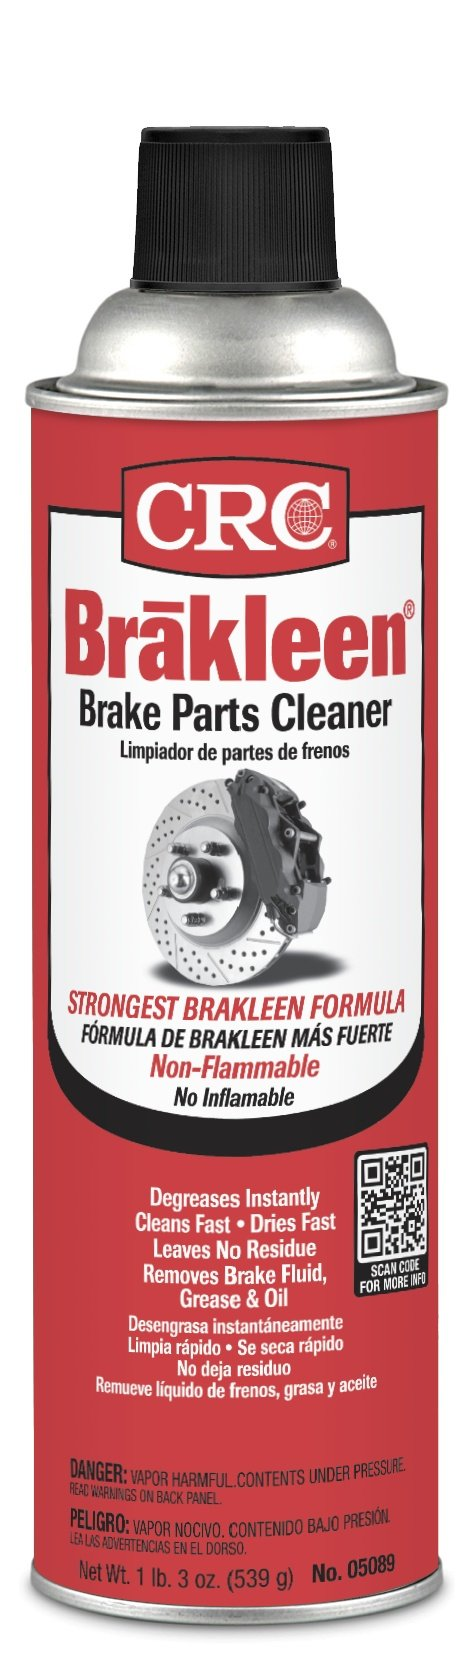 Brakleen® Brake Parts Cleaners - 20oz brakleen cleaner [Set of 12]